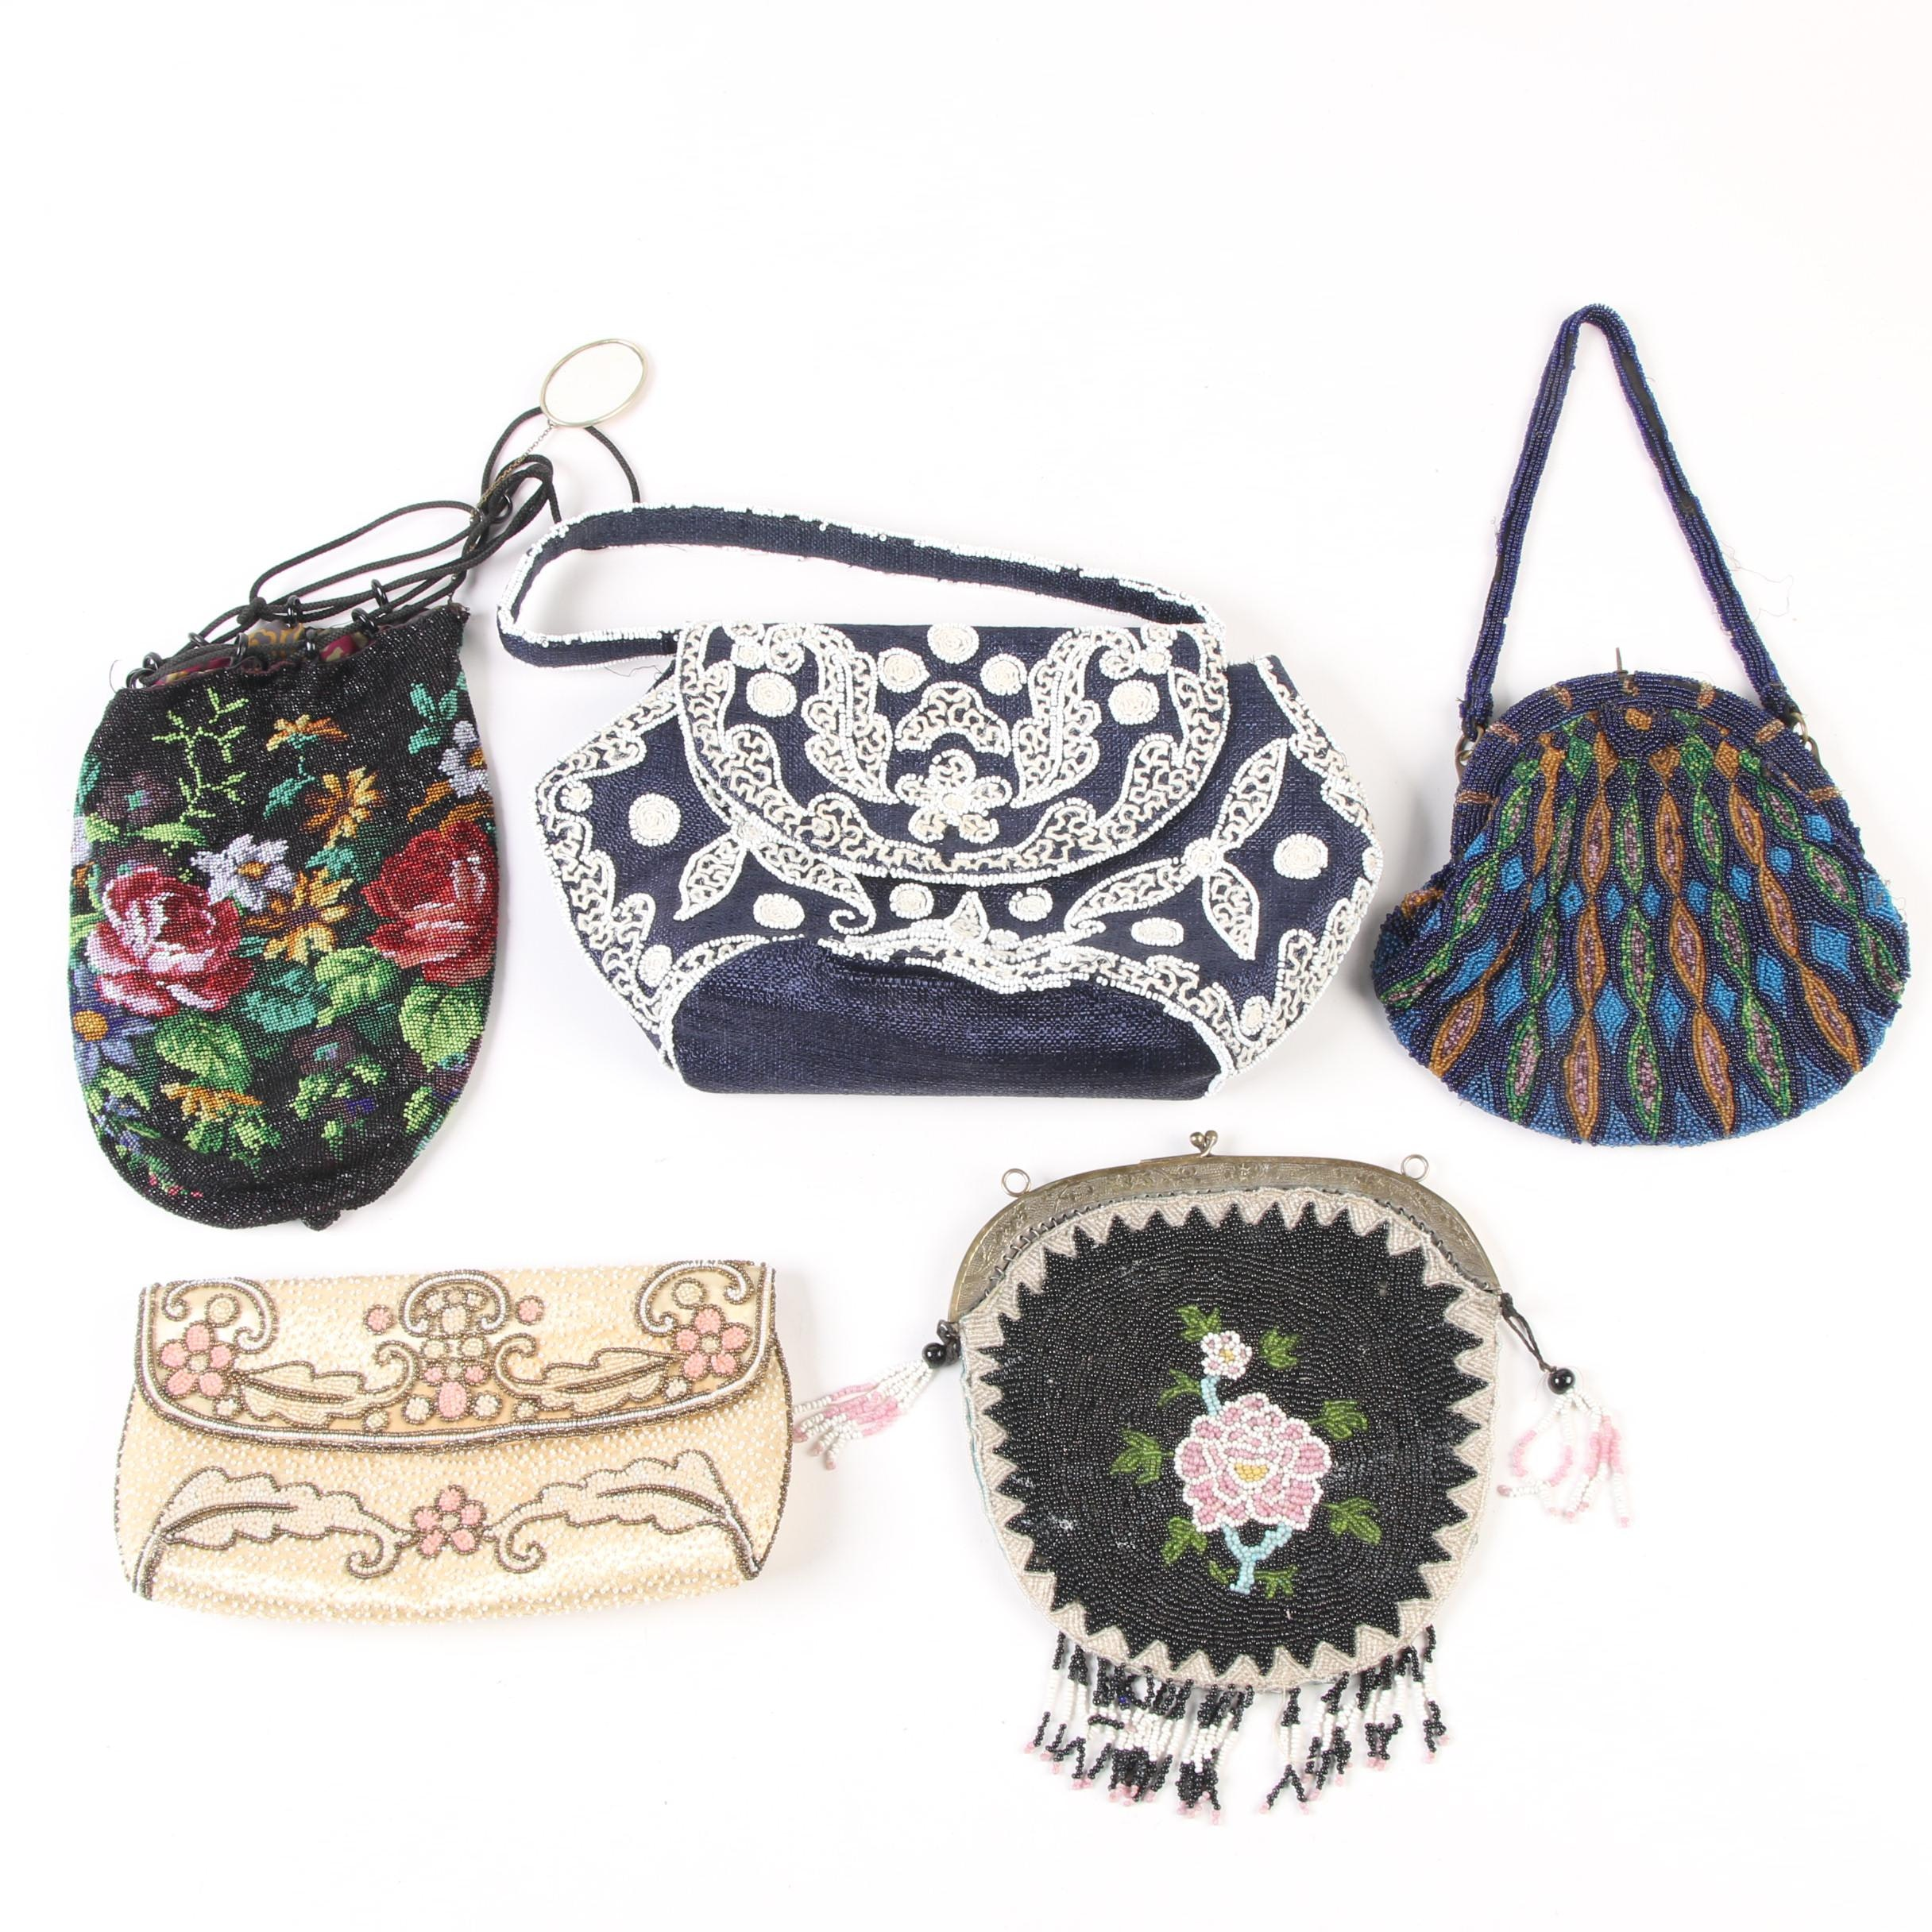 Beaded Evening Bags, Featuring Made in France, Early 20th Century